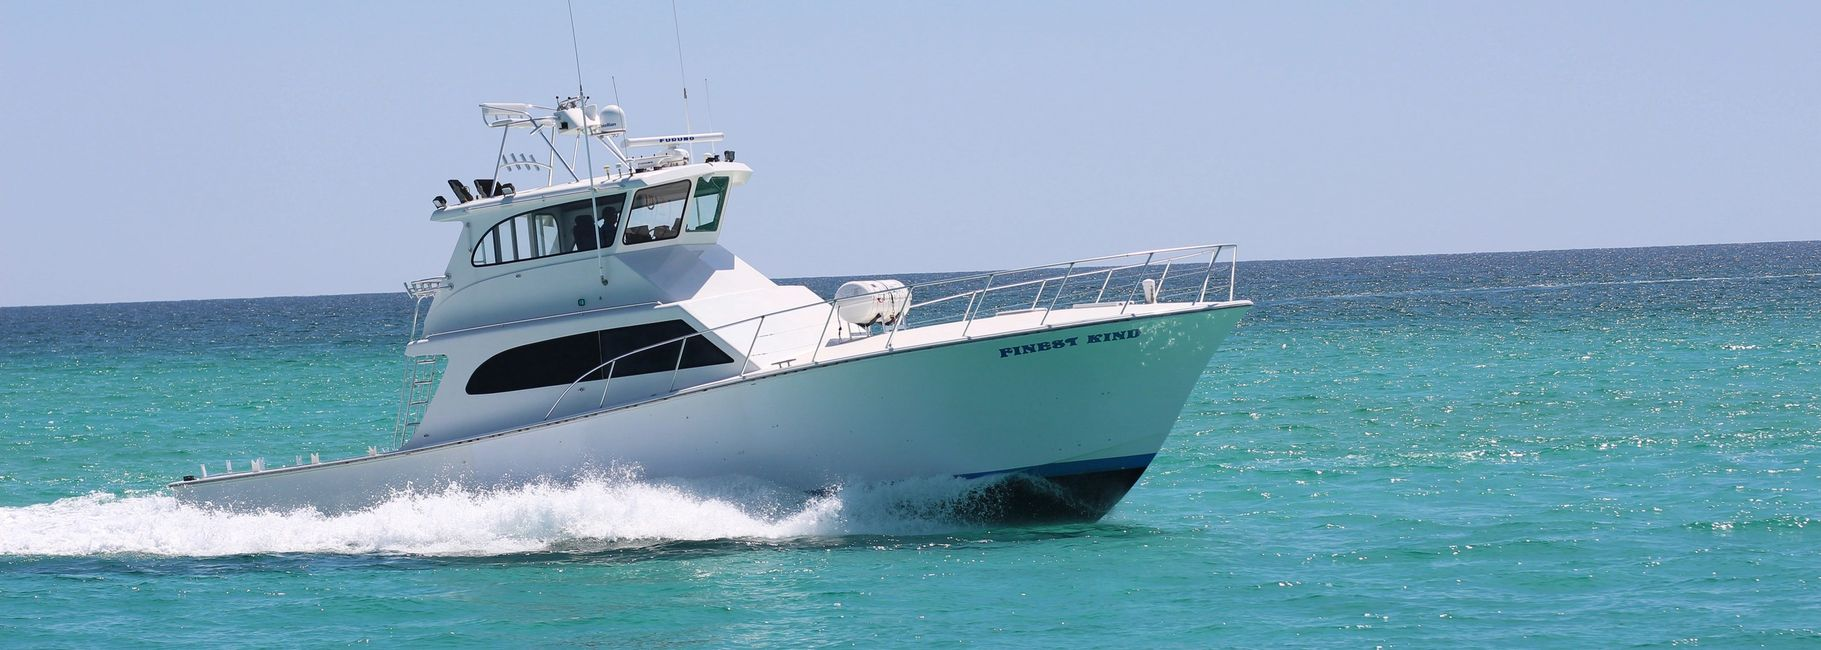 FINEST KIND FISHING CHARTER IS PARTNERED WITH DESTIN JEEP RENTALS